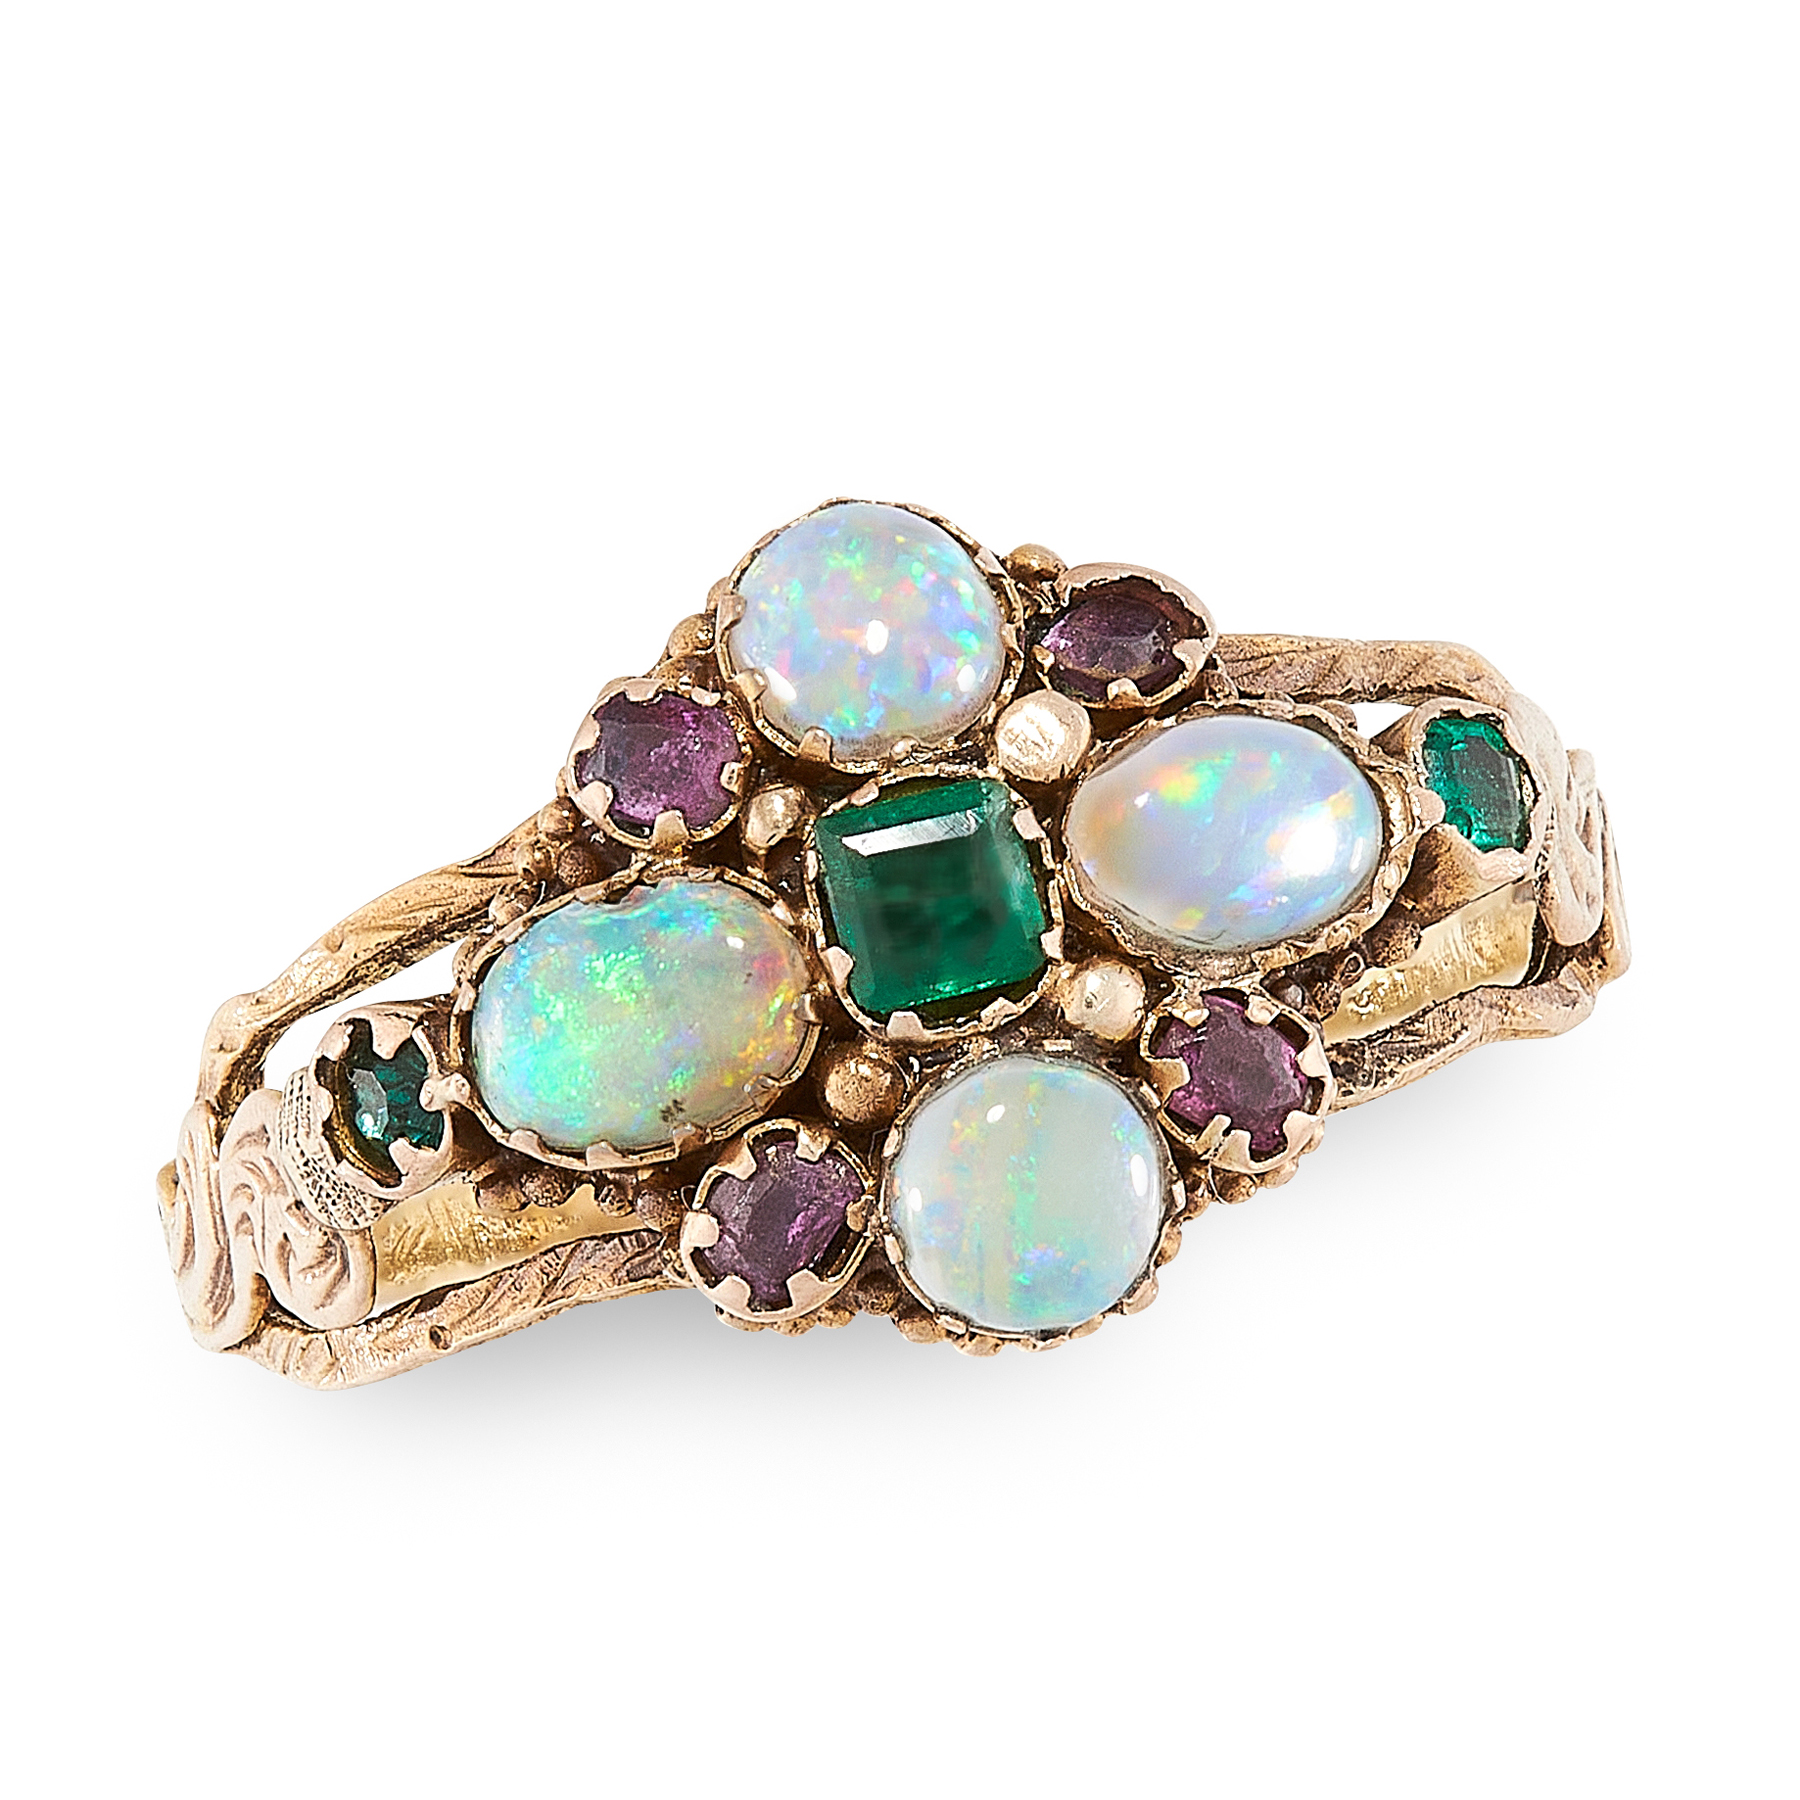 AN ANTIQUE EMERALD, OPAL AND GARNET DRESS RING, 19TH CENTURY in yellow gold, set with a trio of